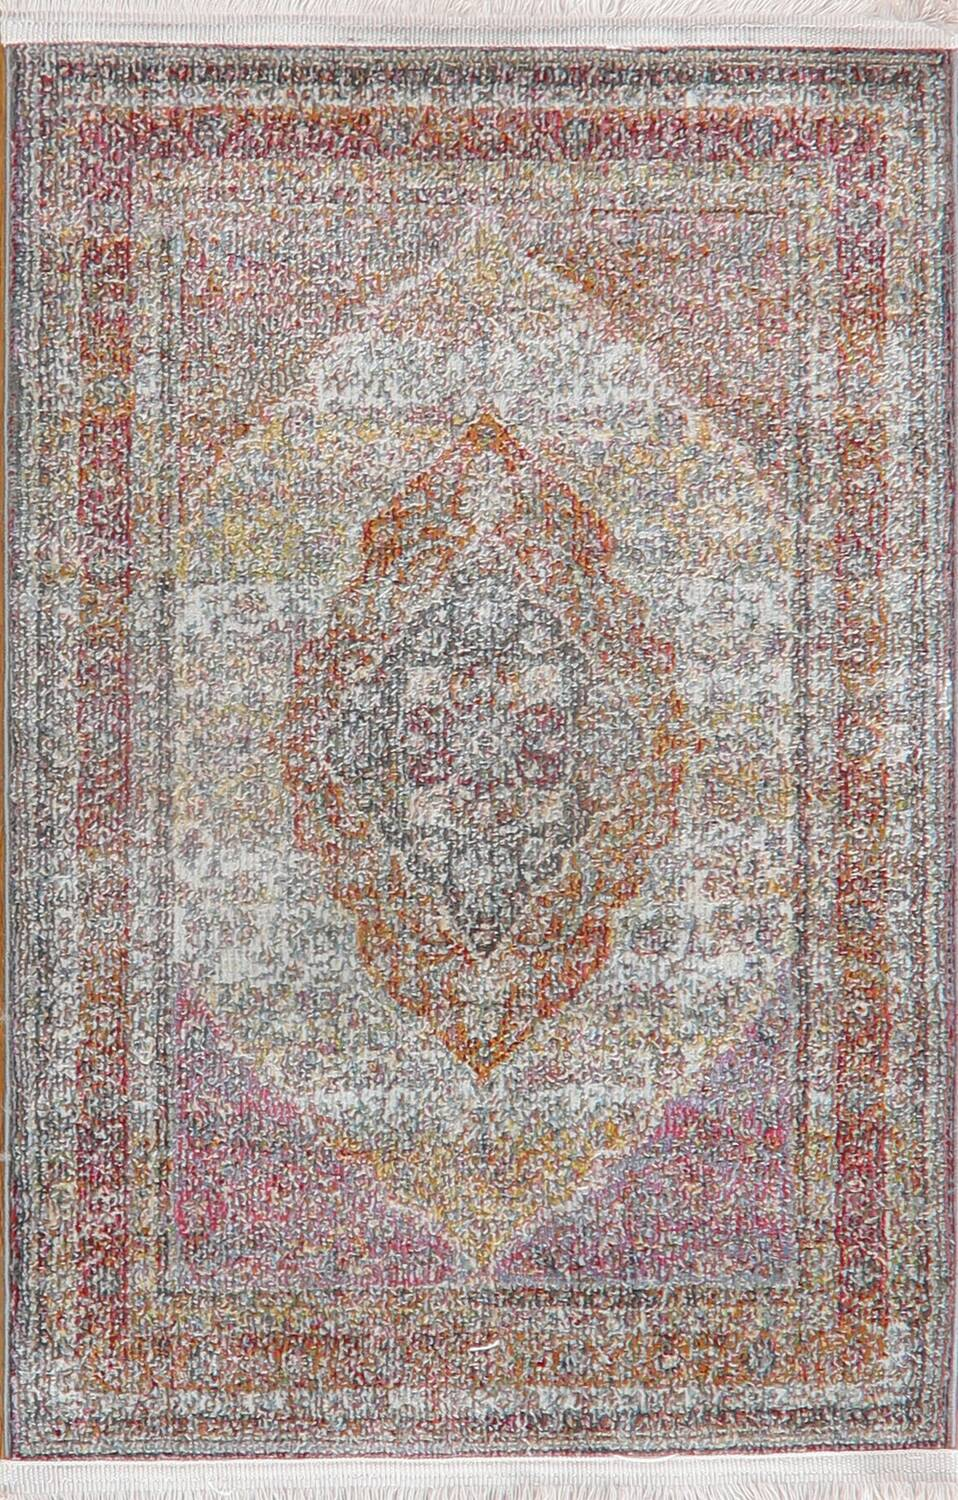 Traditional Floral Distressed Turkish Oriental Rugs image 7